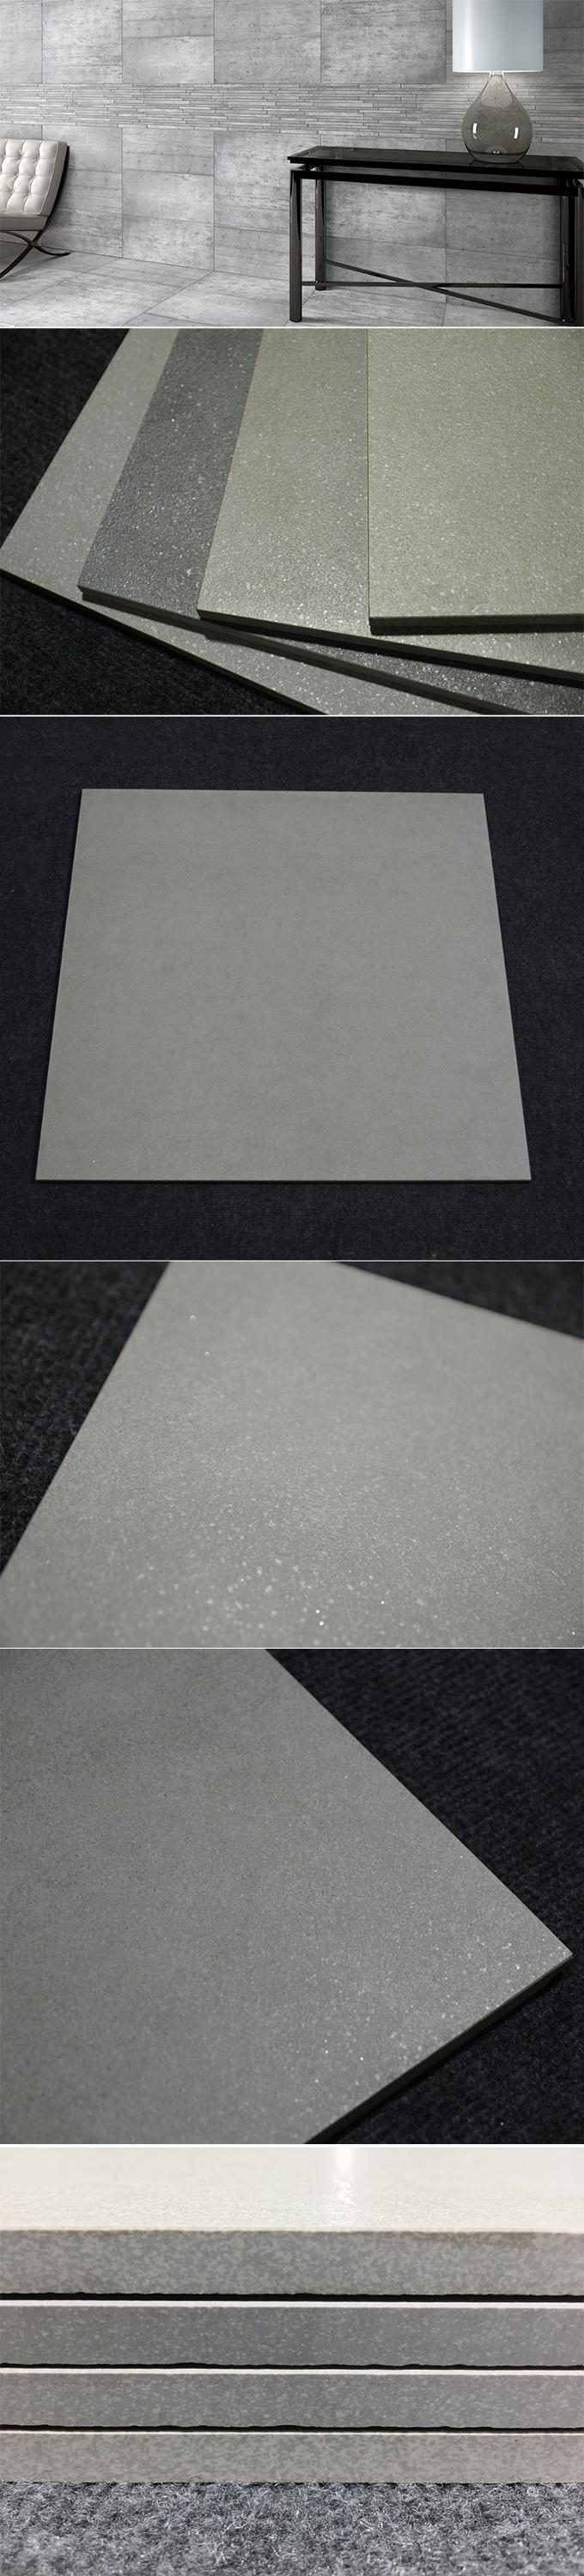 HCM6607 unusual anti acid ceramic floor tiles